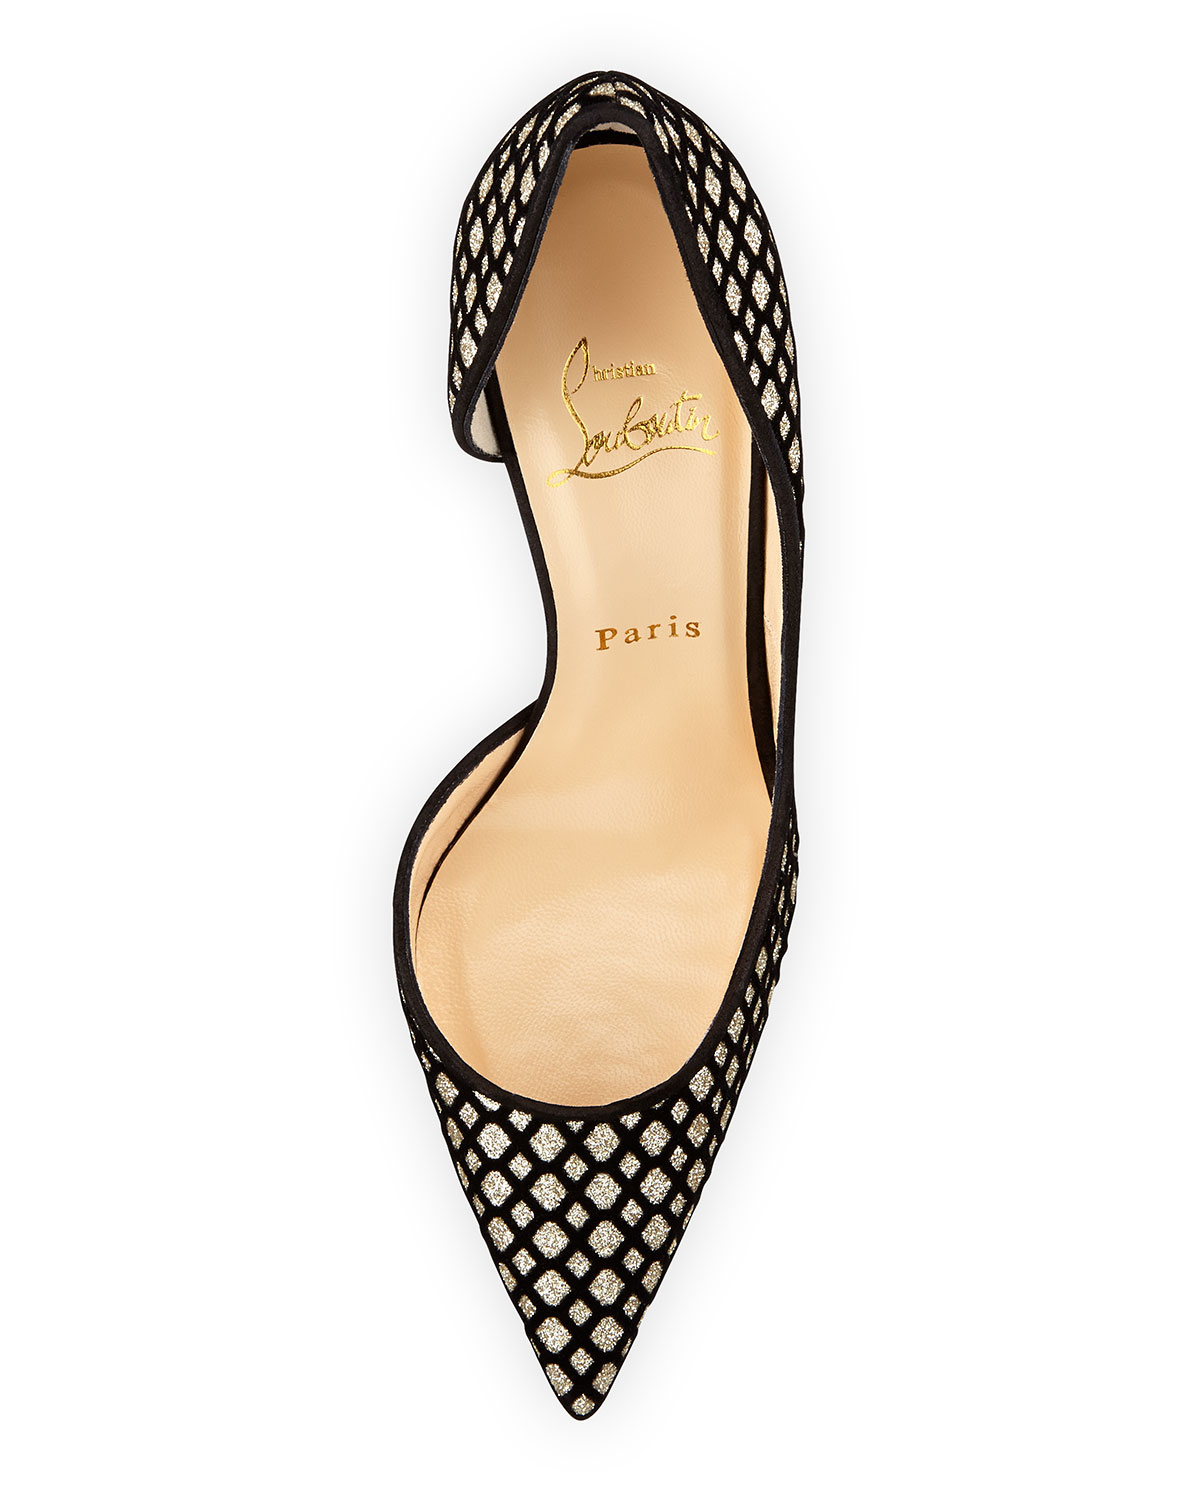 luna christian single women Complete your look with designer shoes by christian louboutin, manolo blahnik, gianvito rossi, aquazzura, saint laurent and more at barneyscom.